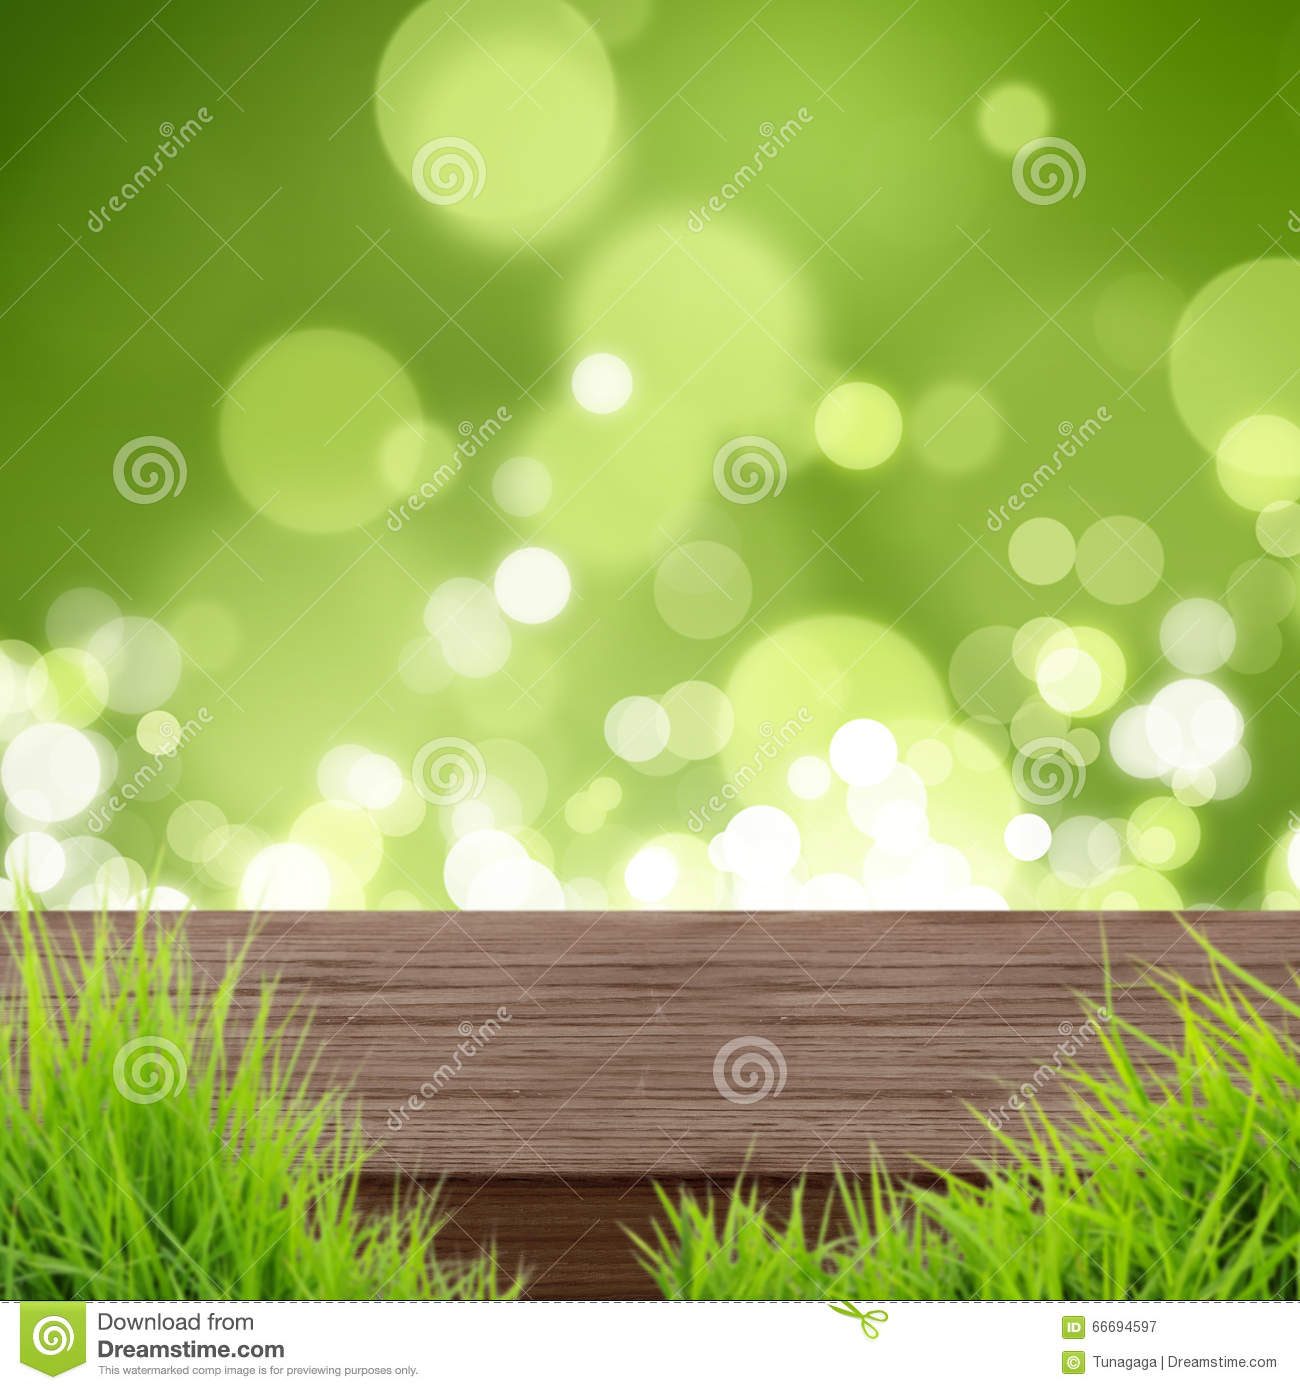 Wood table background hd - Wood Table Natural Green Background Stock Photo